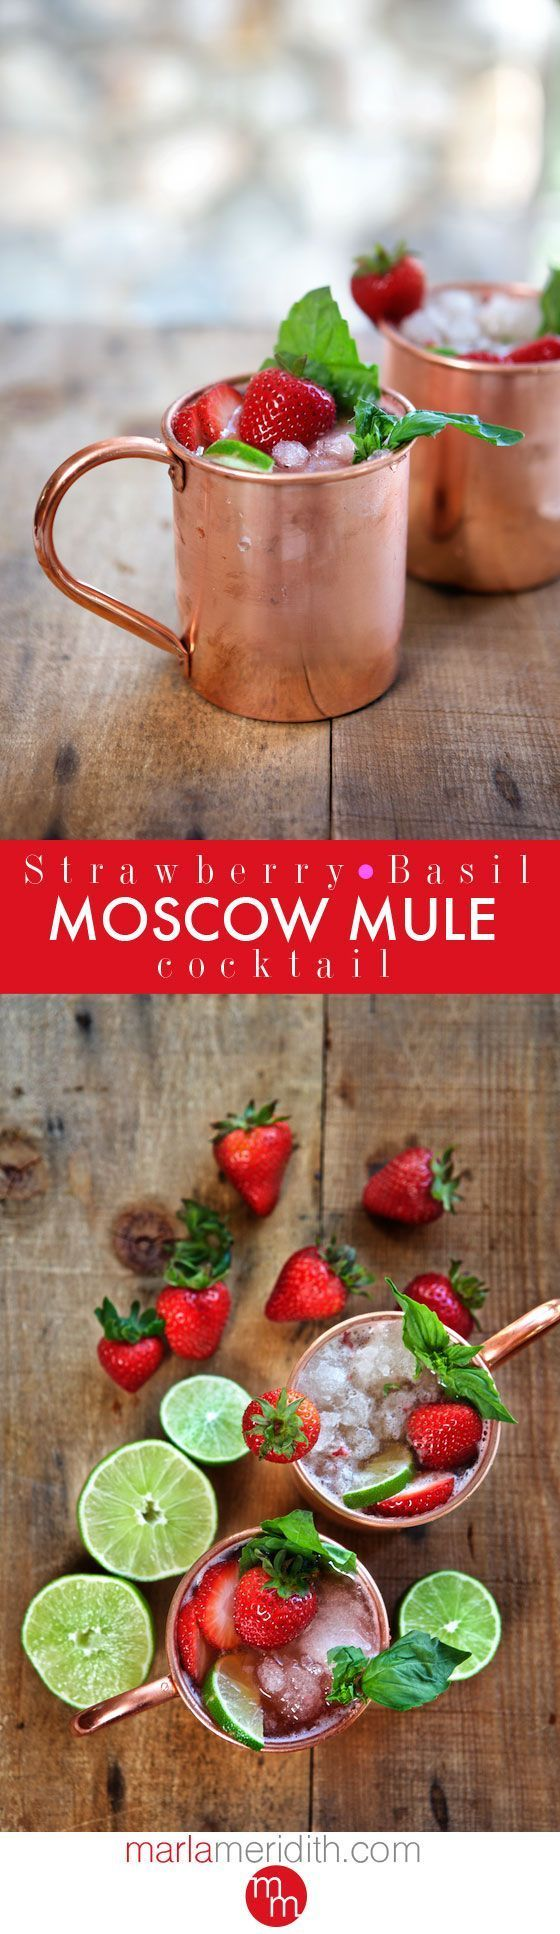 Strawberry Basil Moscow Mule Cocktail | The ultimate summer libation!  @marlameridith